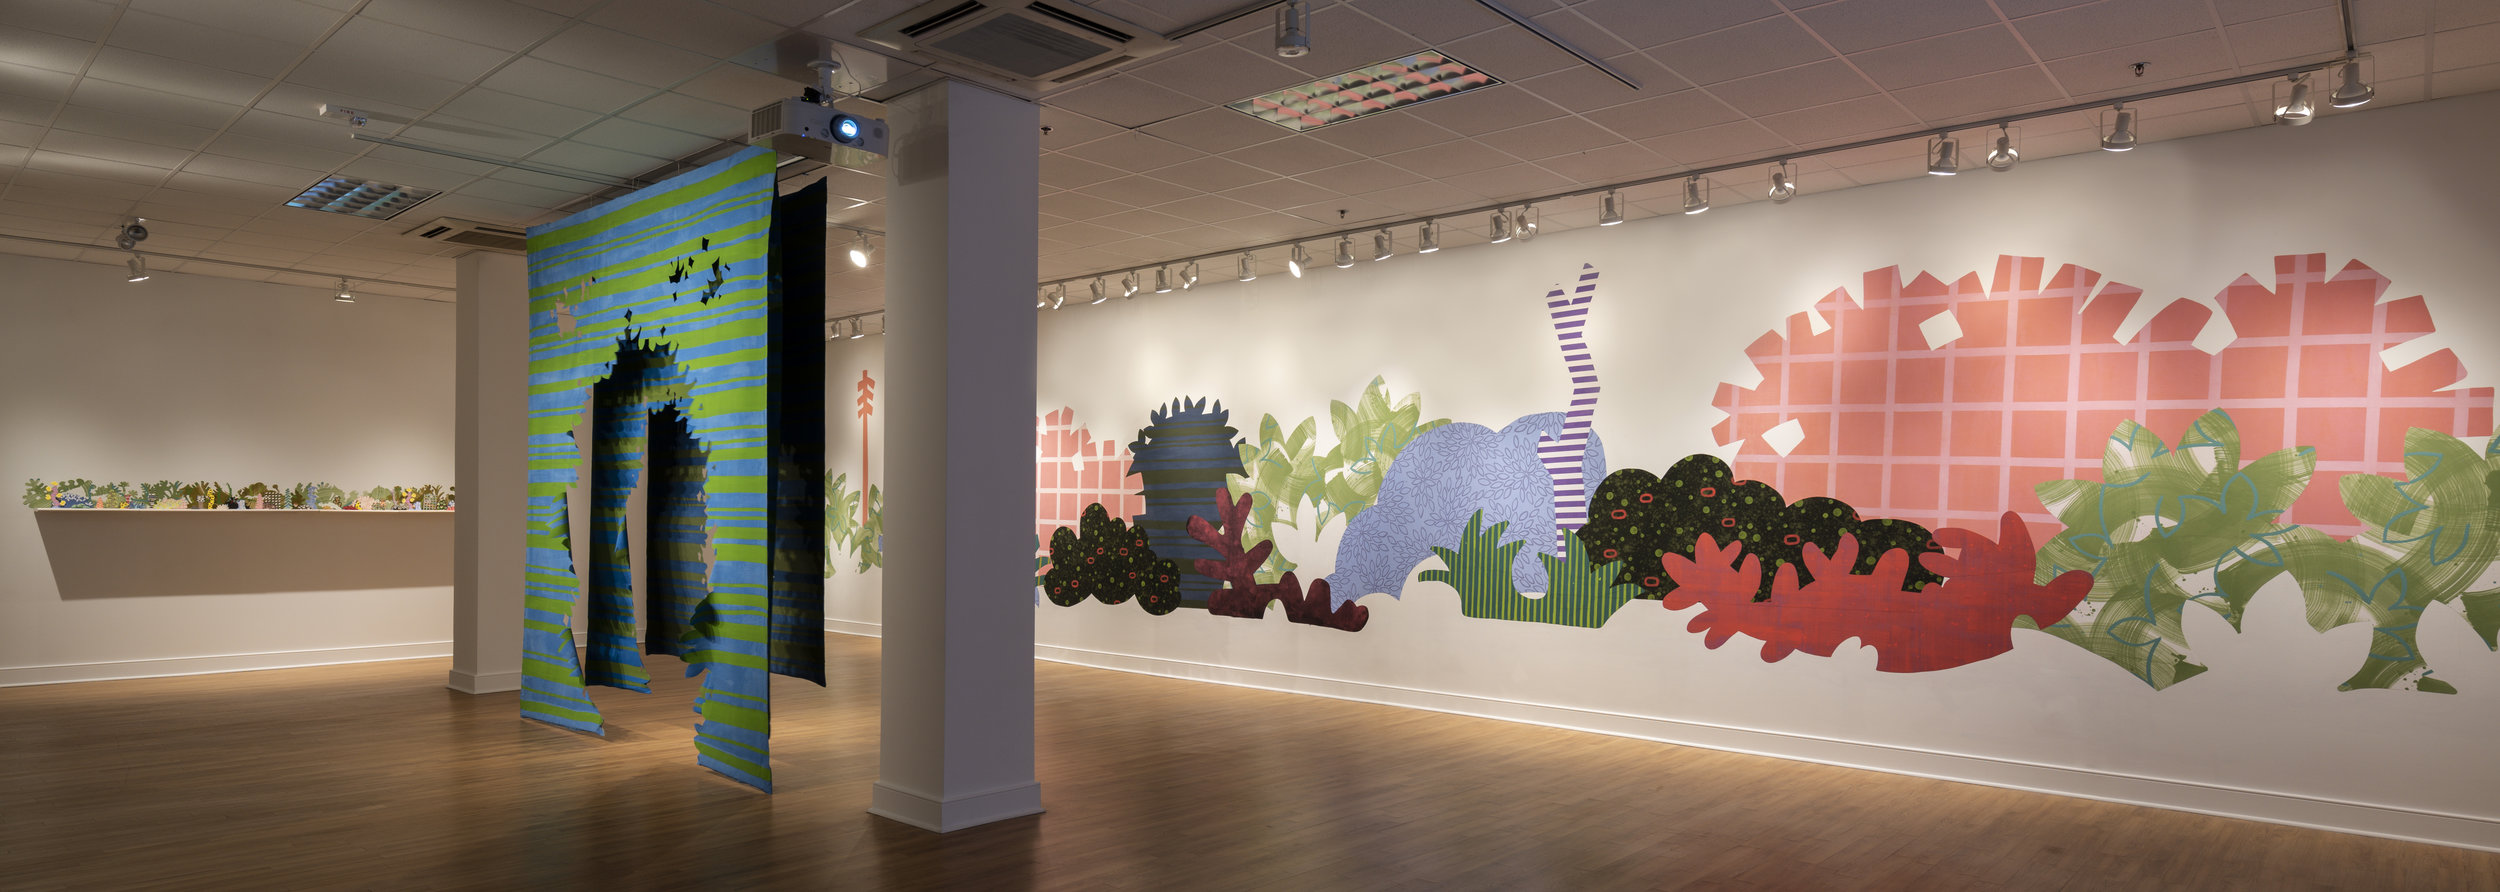 From right to left:     Piecemeal Promenade   (2019) 48ft x 11ft; latex on muslin cut-outs, adhered to wall;     Proscenium Hedgerow   (2018) 11ft x 10ft x 2ft; series of three latex on cut muslin panels;    Horizon Allsorts  , (2018) 12ft x 1ft; (6) floating wood shelves, painted muslin, ceramic, underglaze and glaze